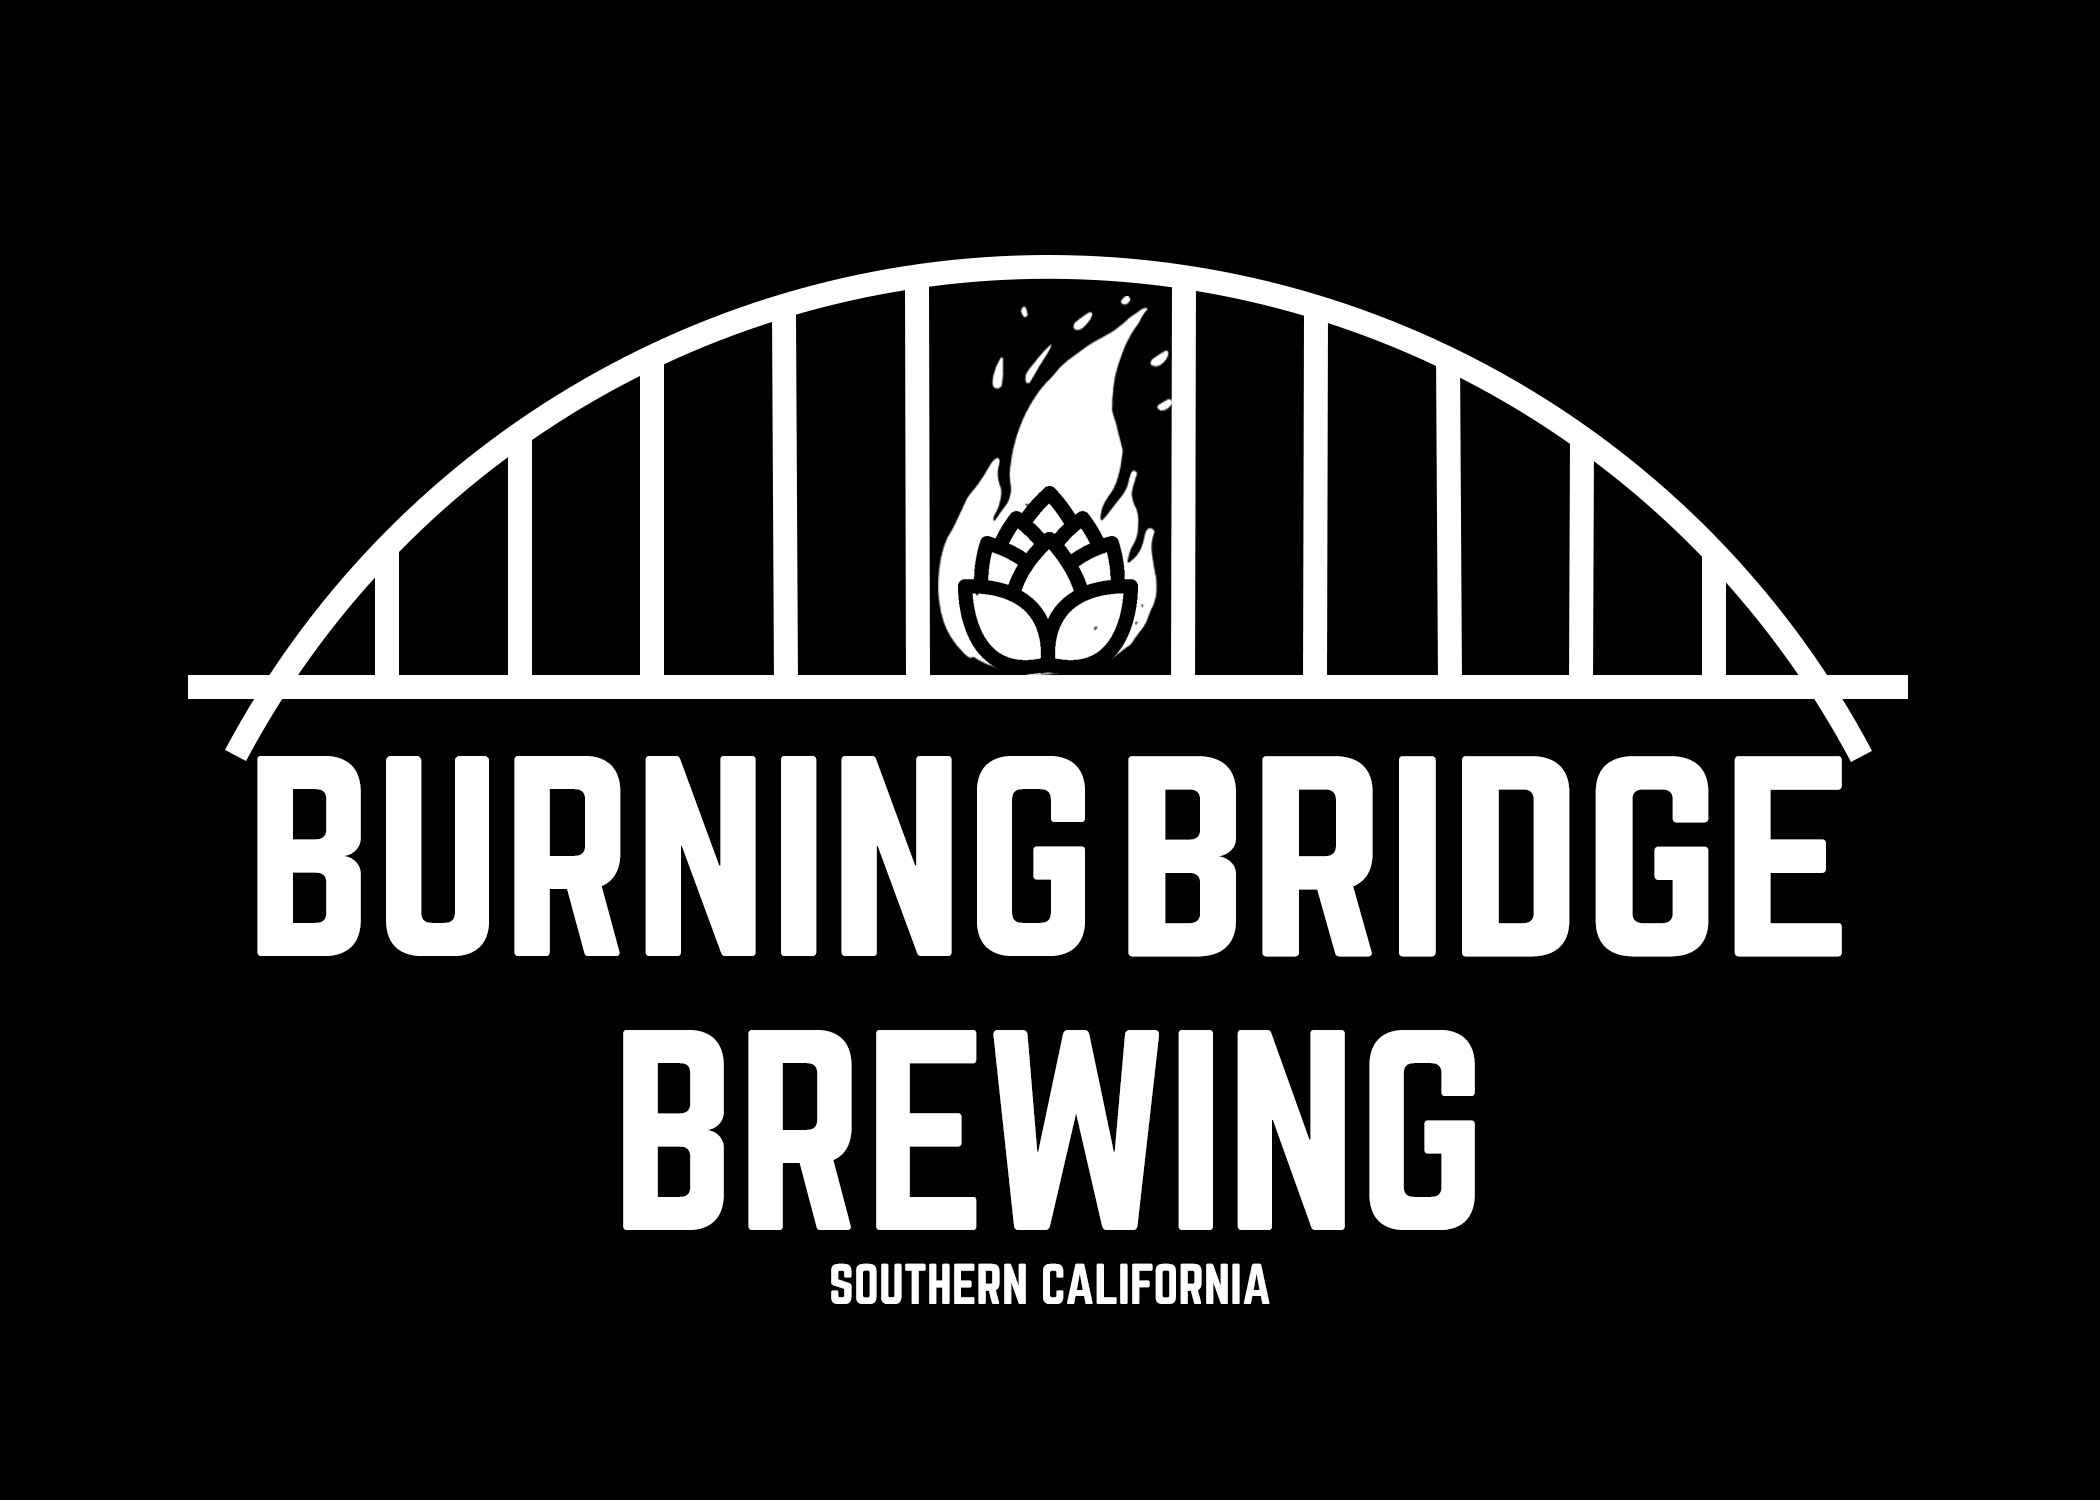 Burning Bridge Brewing